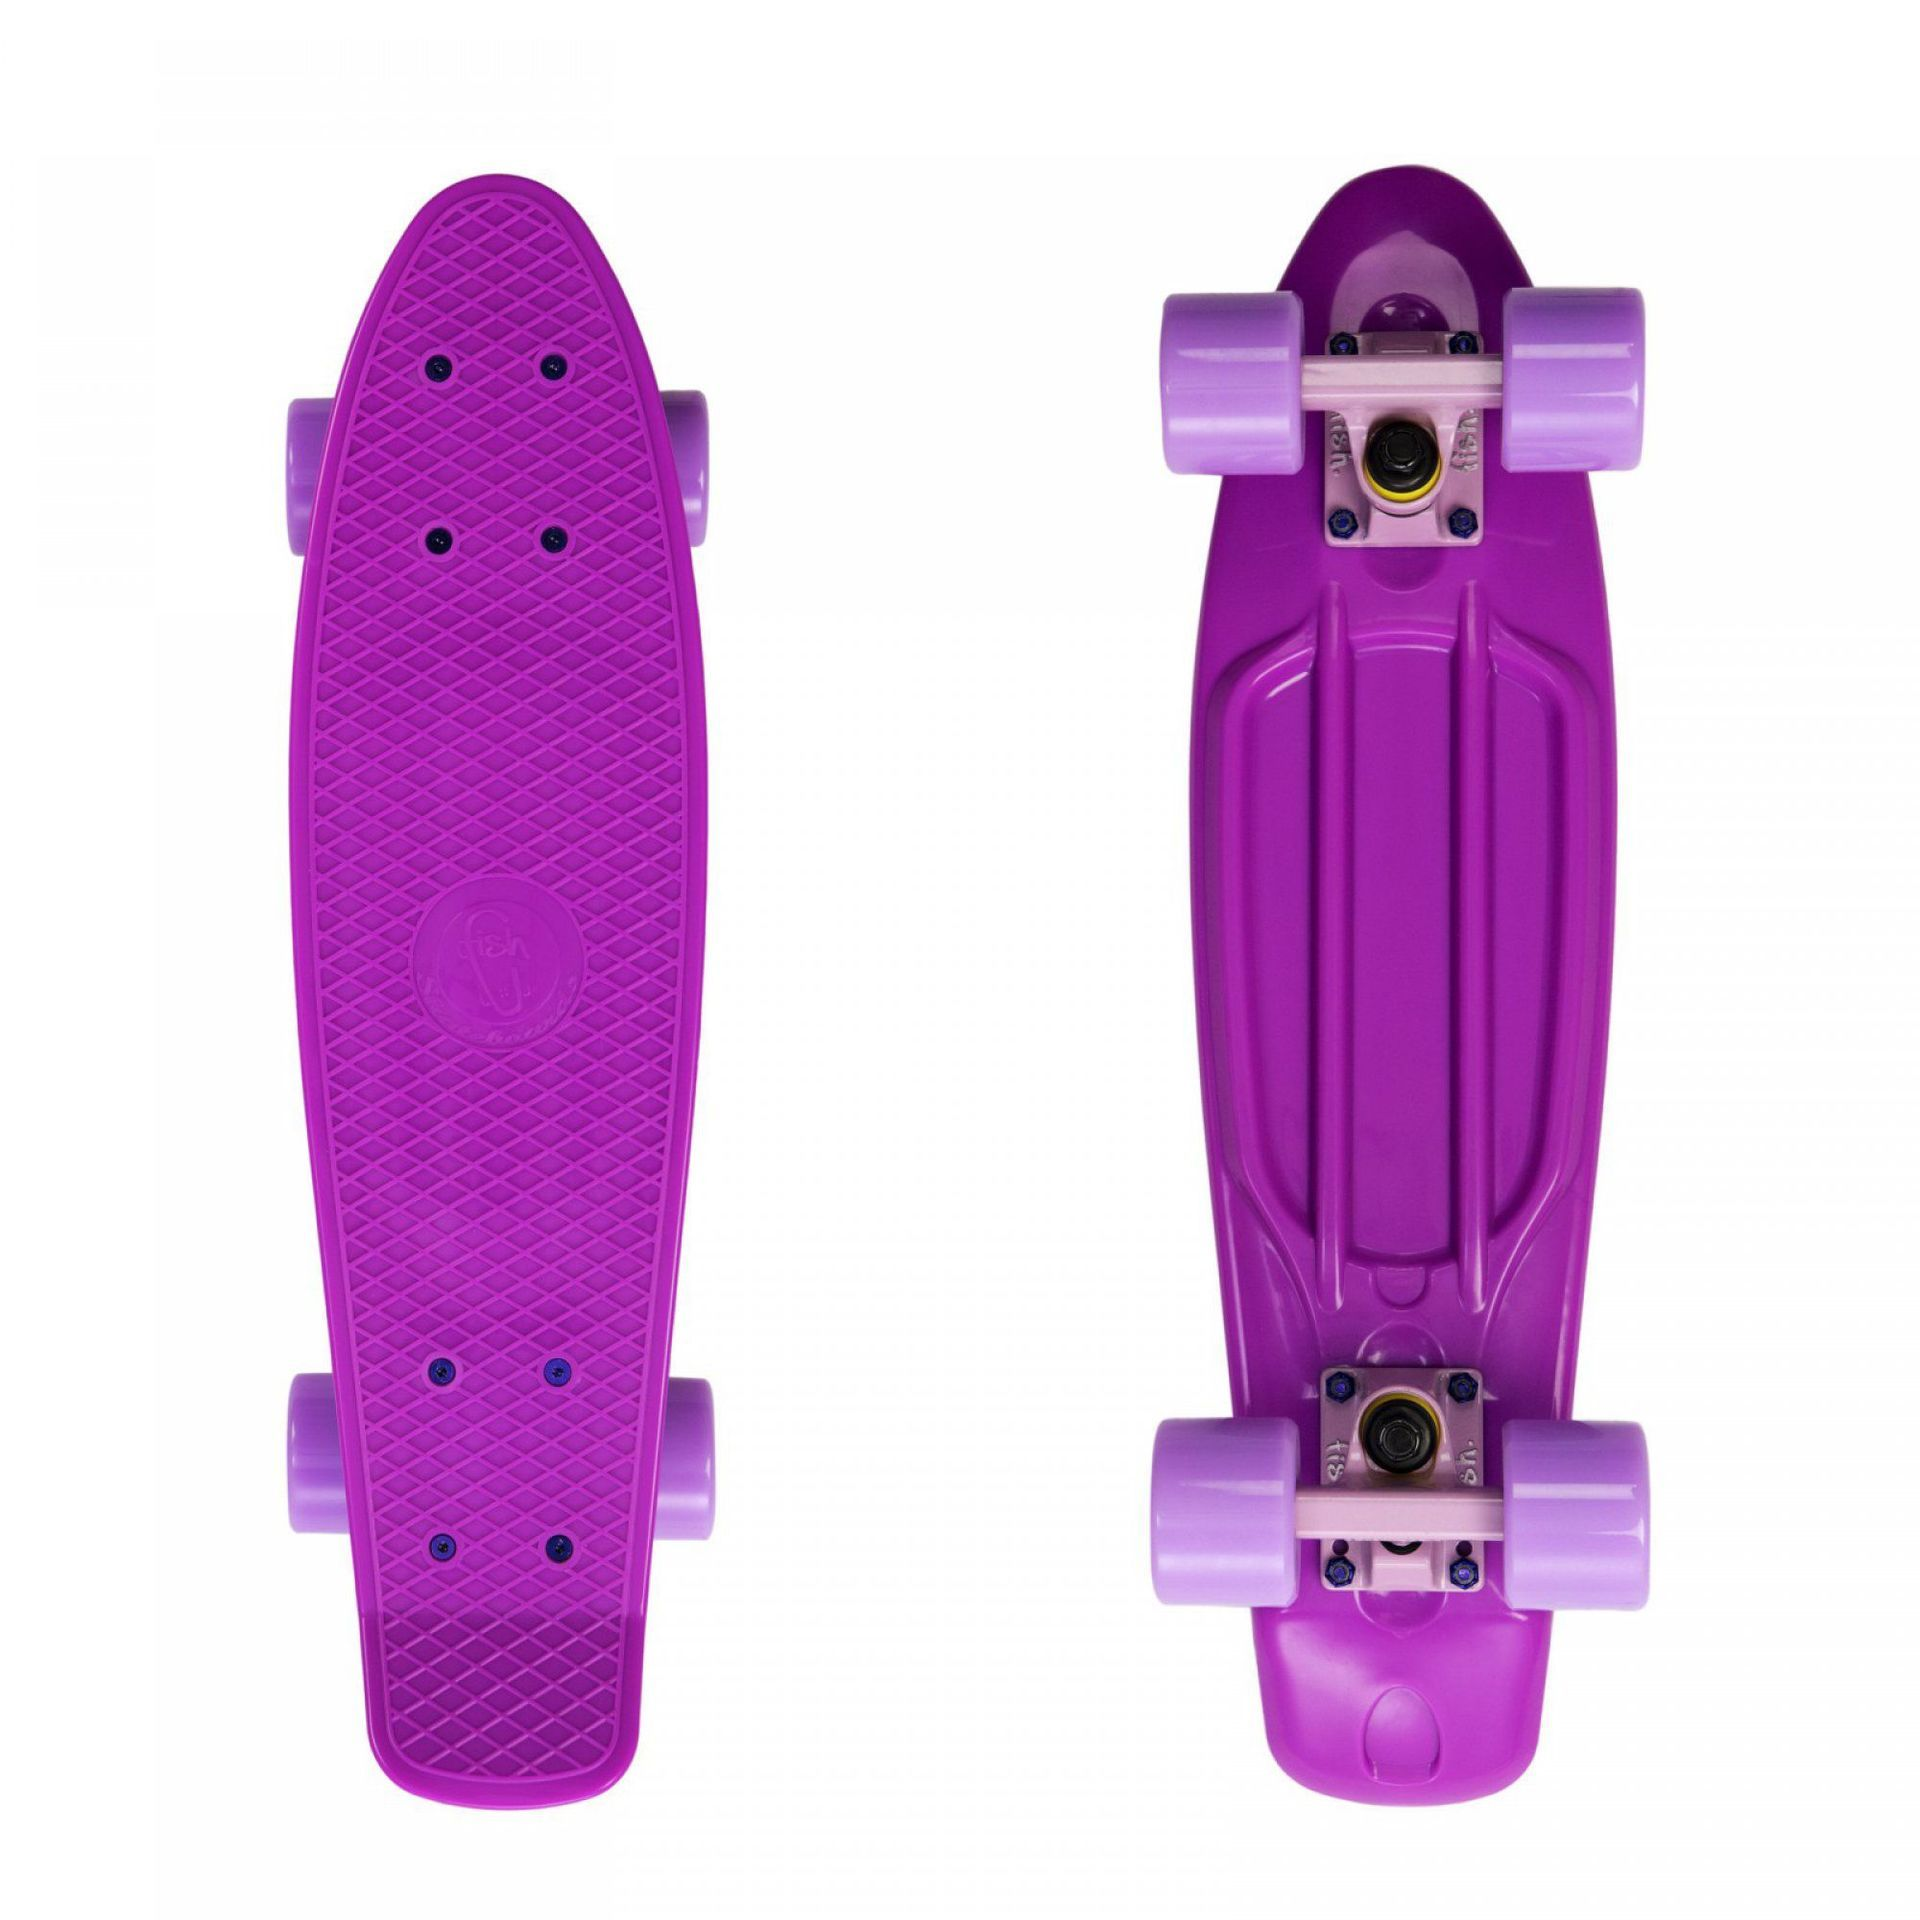 FISHBOARD FISH SKATEBOARDS CLASSIC PURPLE|SUMMER PINK|PURPLE